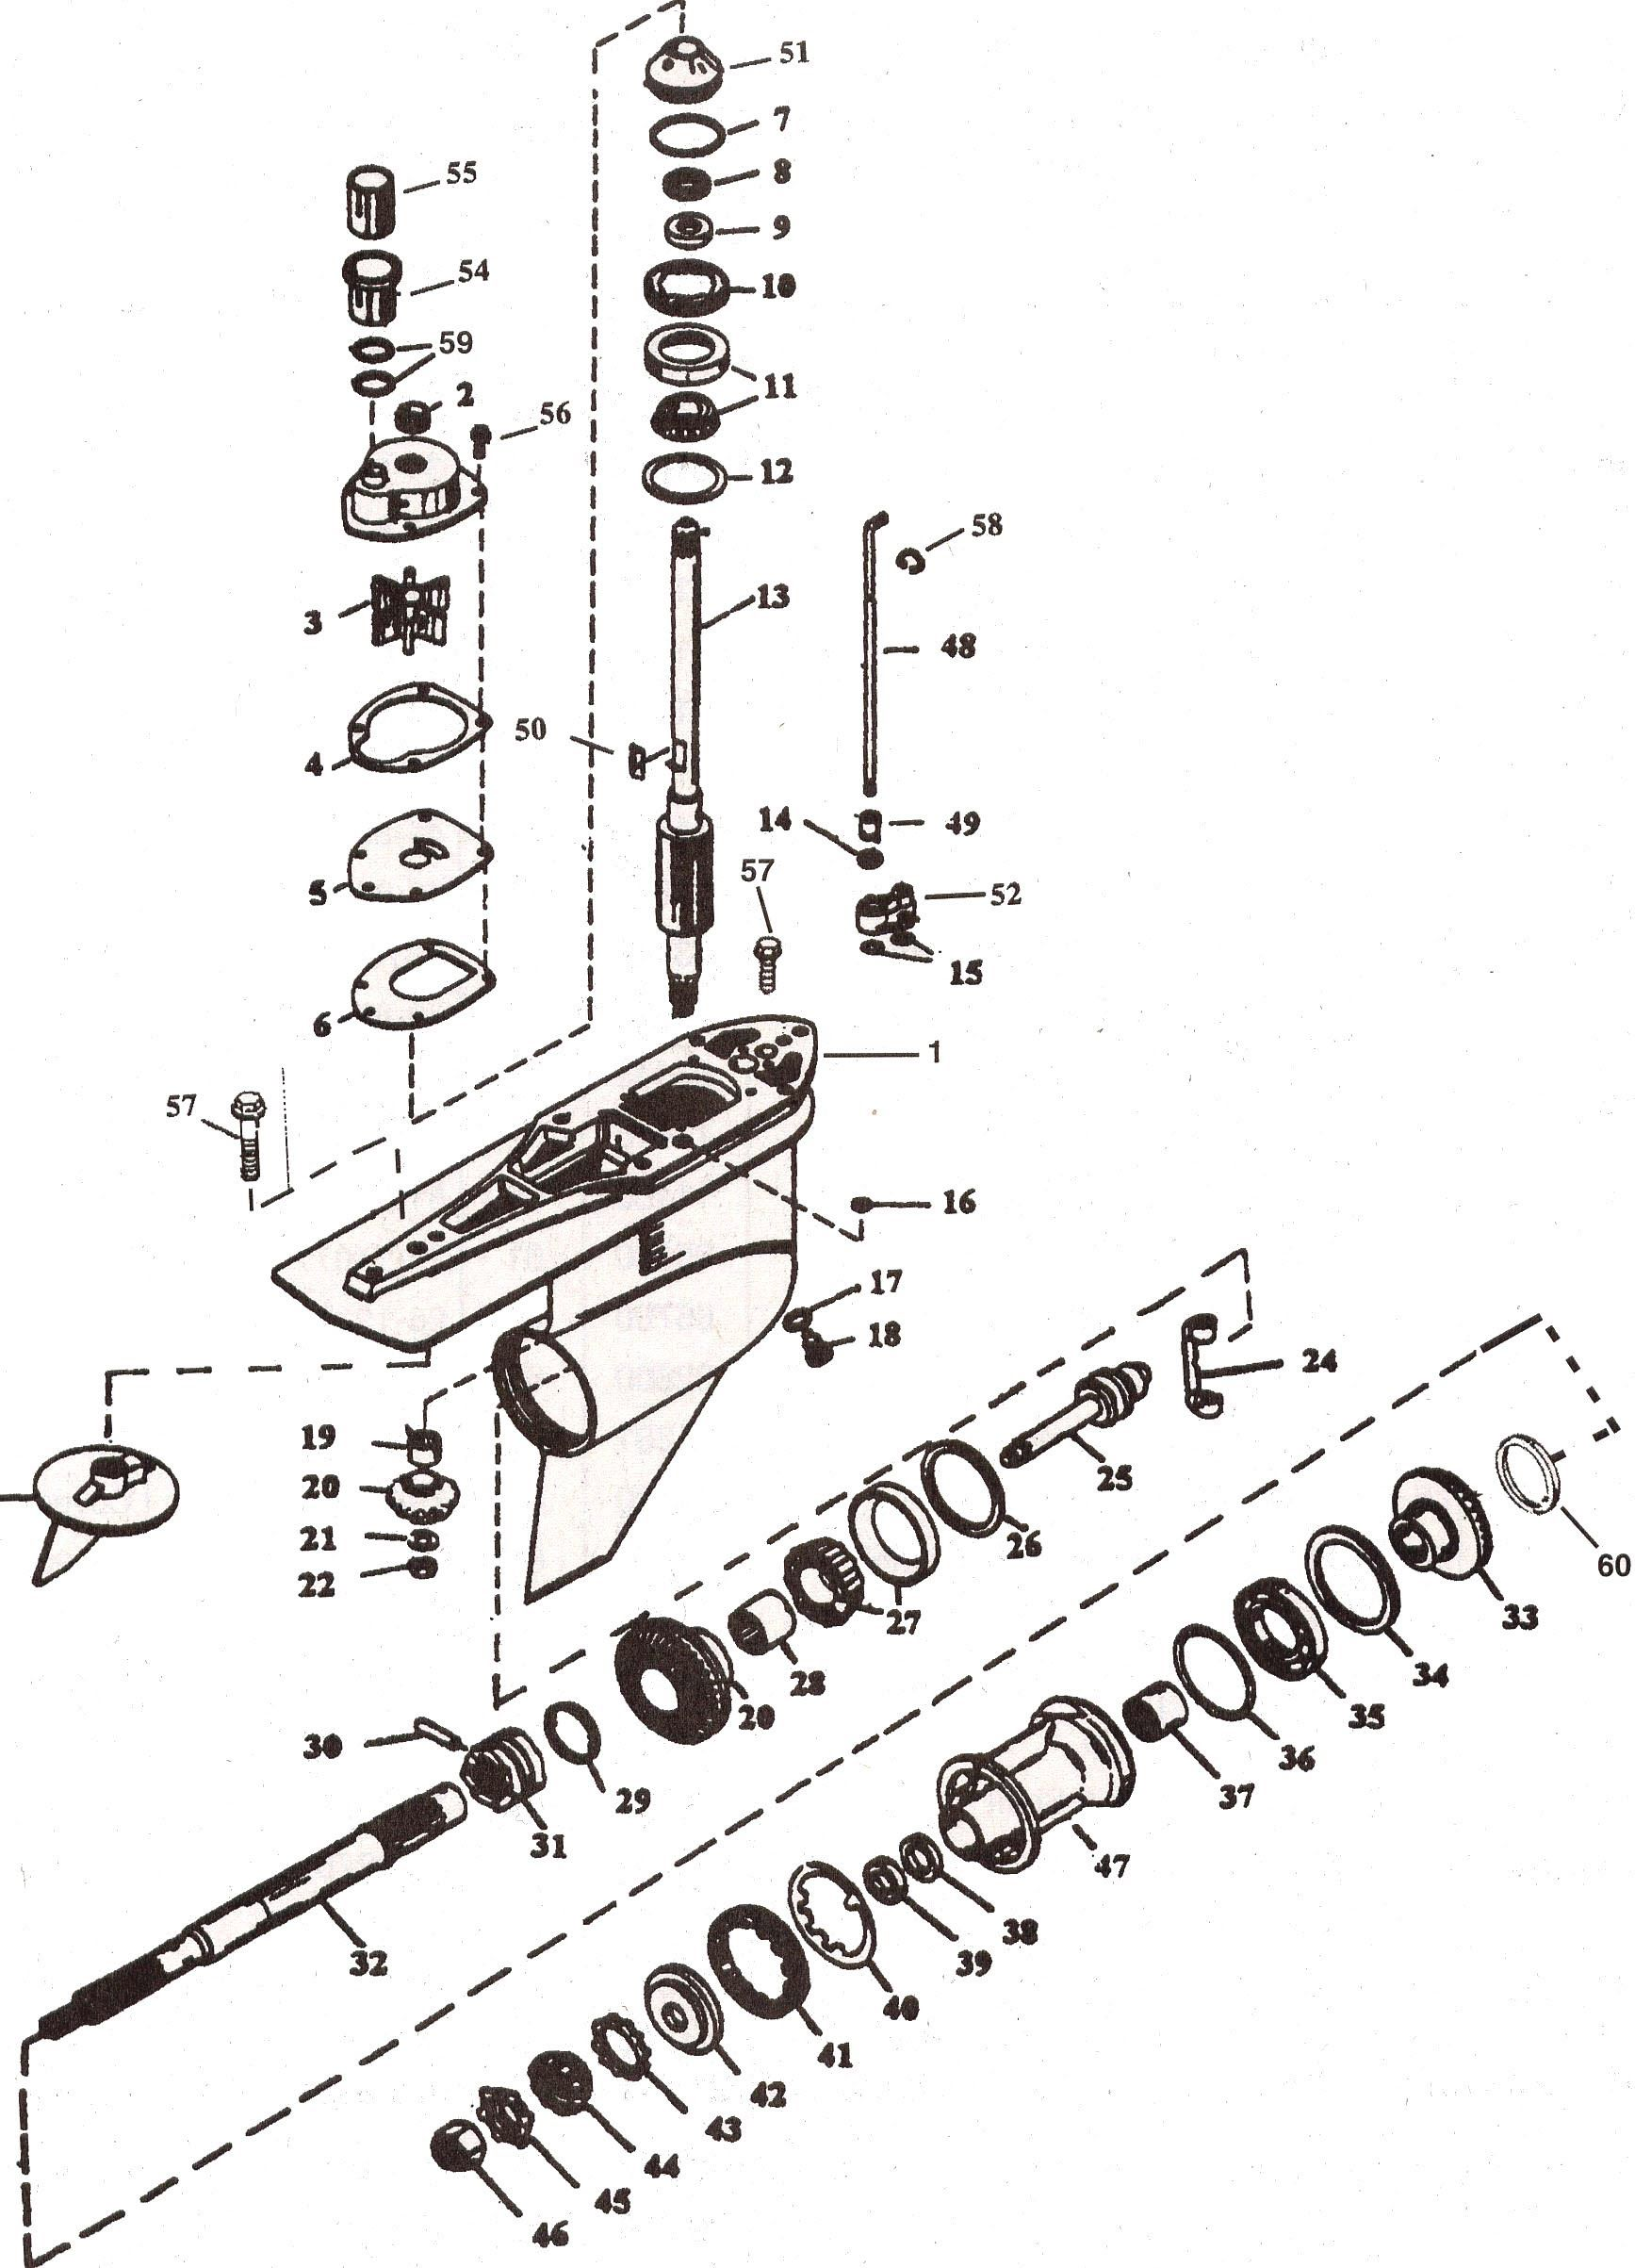 Mercruiser Alpha 1 Generation 2 Parts Drawing